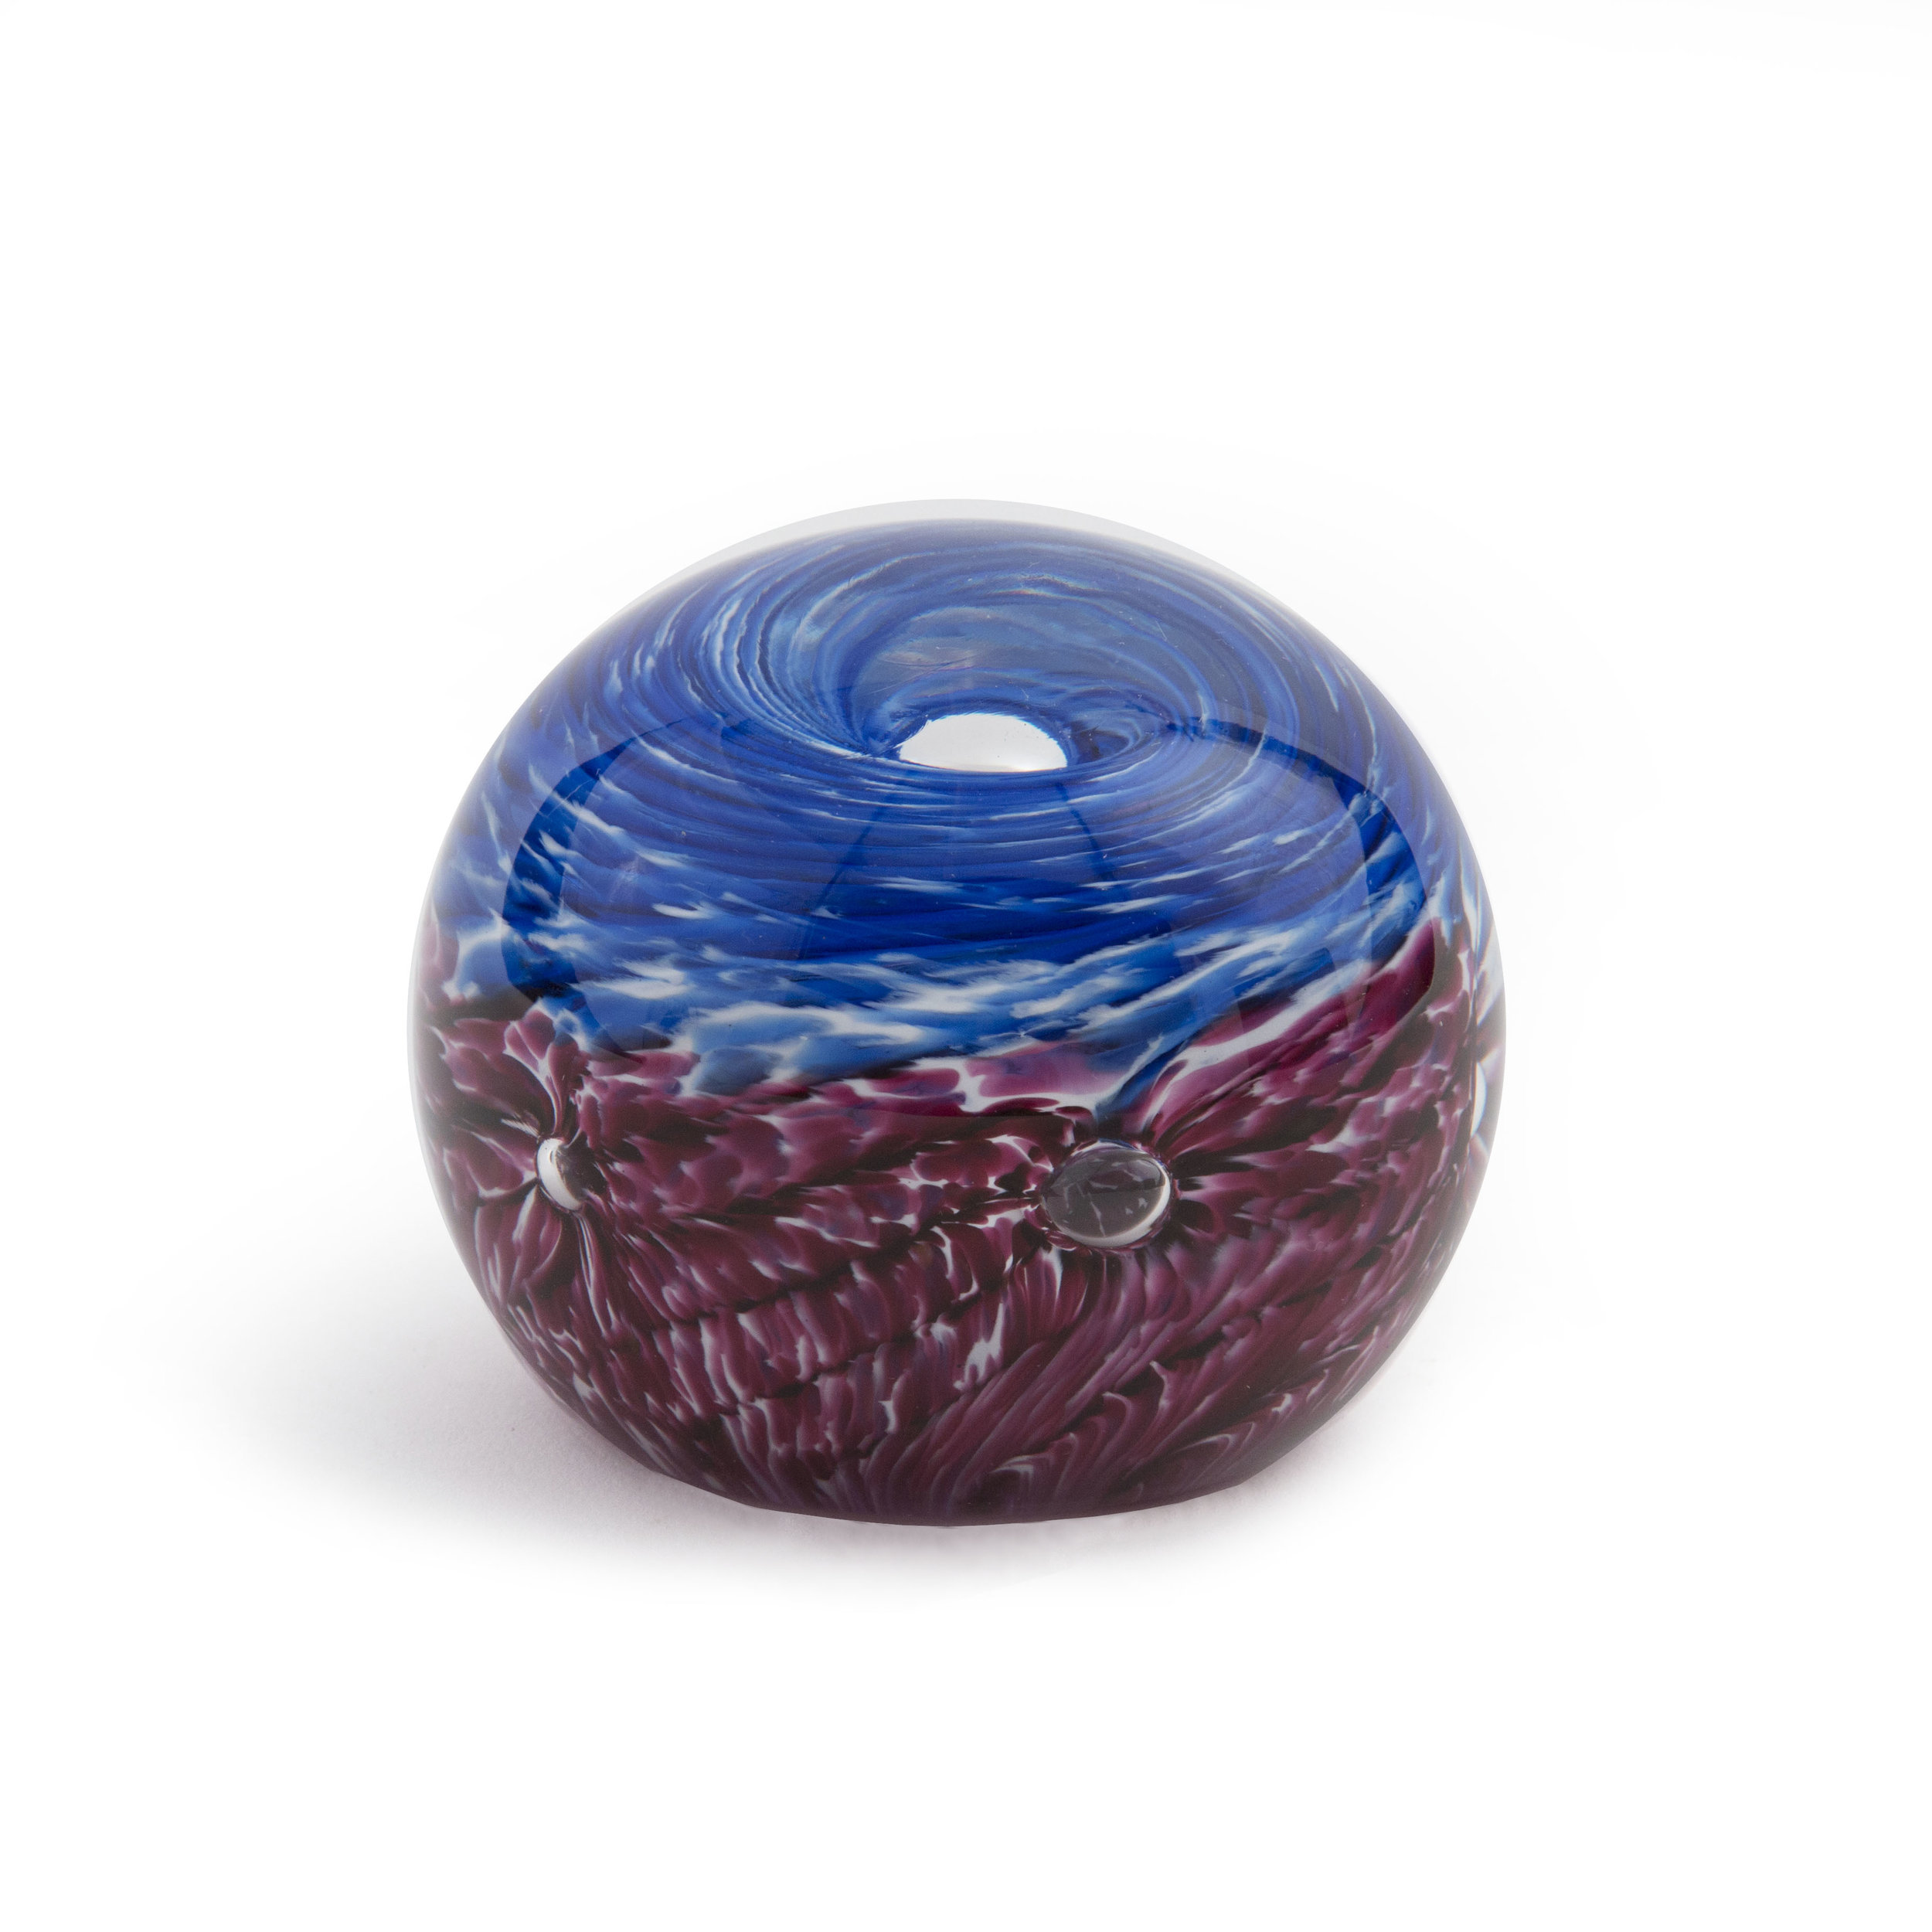 Holdman-studios-blown-glass-experiences-paperweight-example.jpg